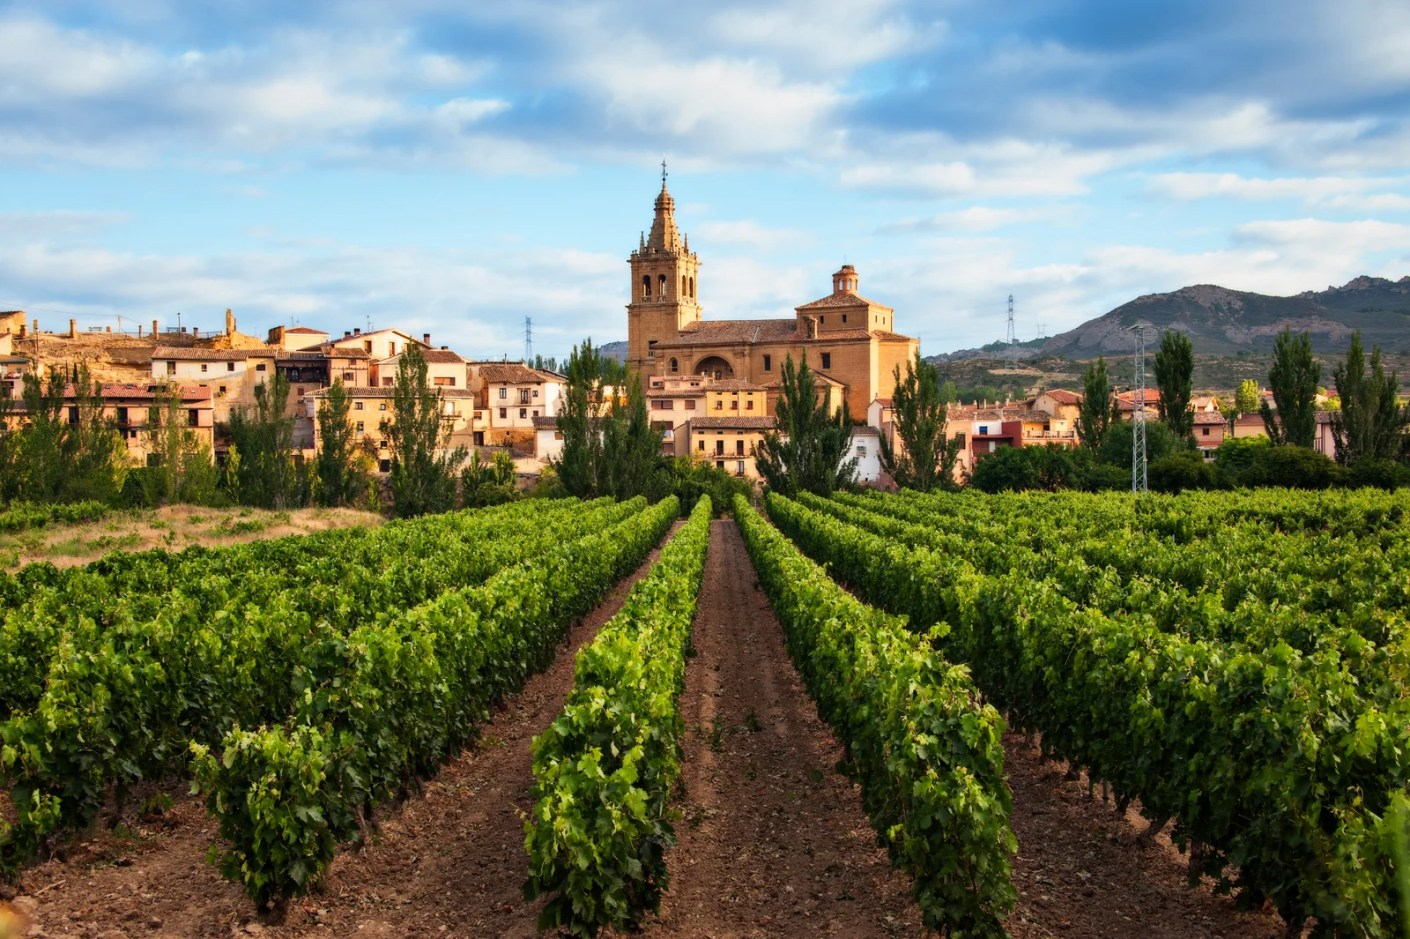 Vineyard and village of Briñas in the district of Haro